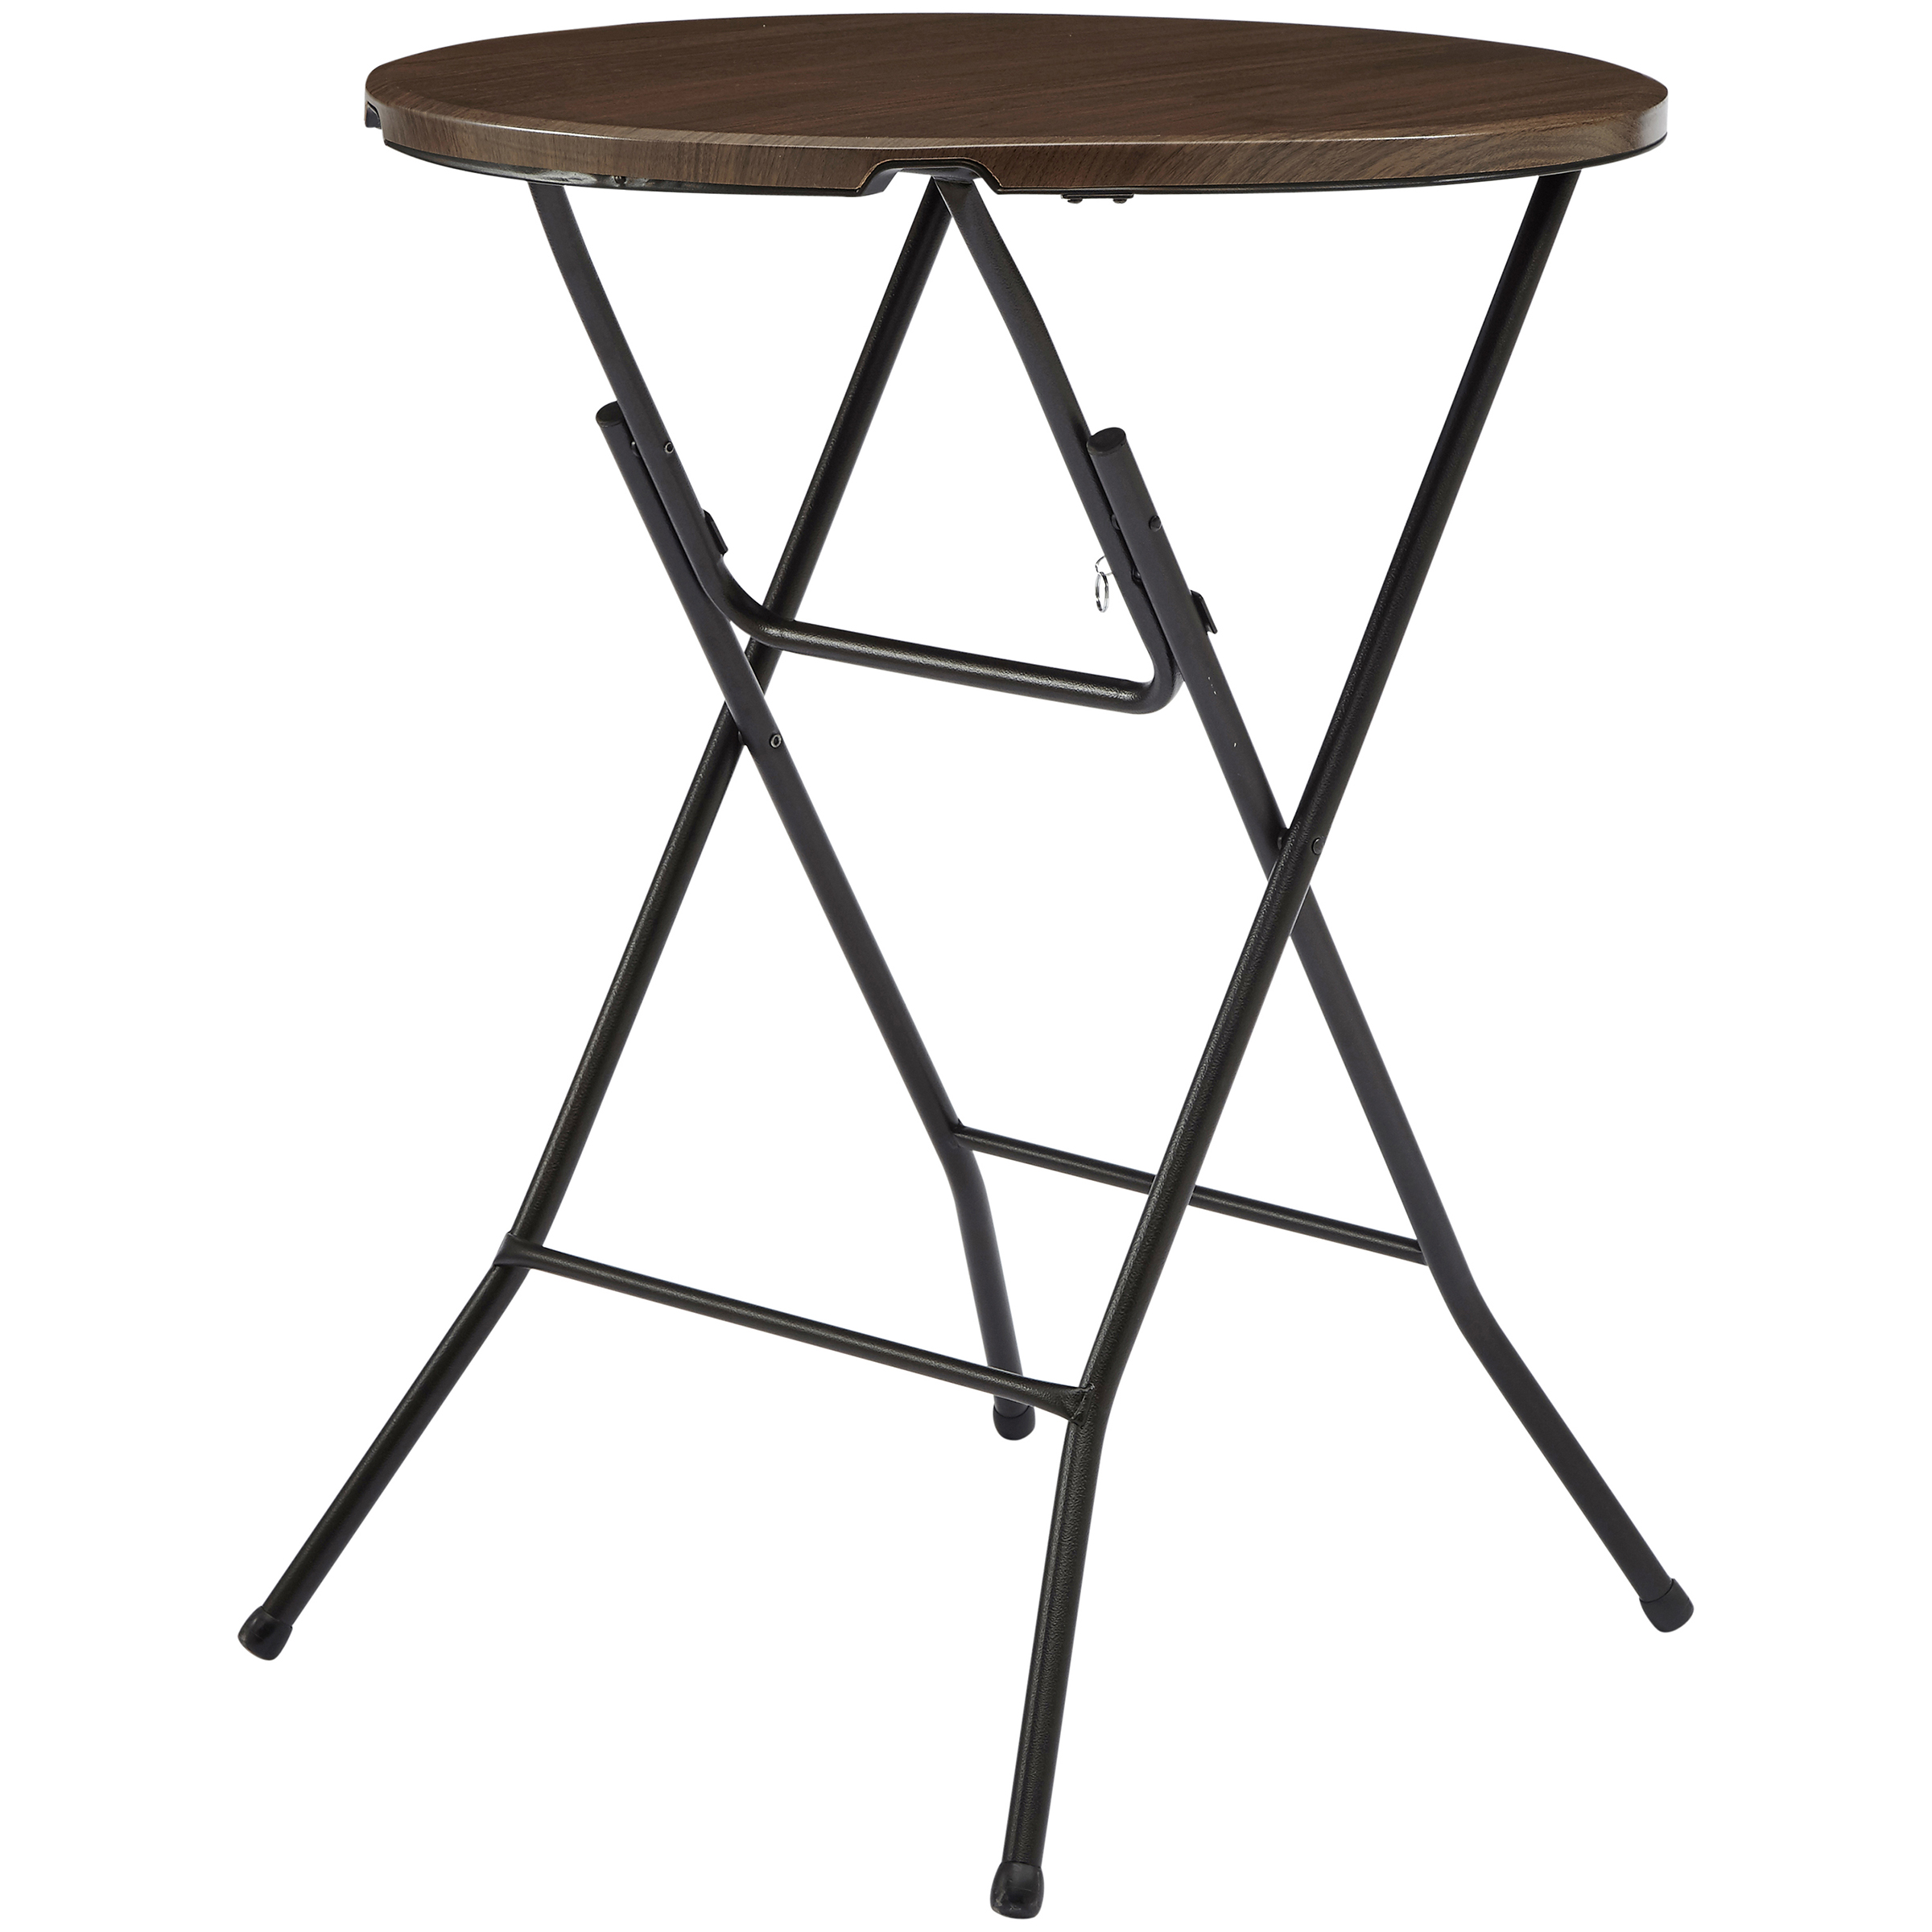 mainstays round high top folding table walnut bar height accent half circle wall black distressed side dining chairs room dark blue coffee plexi acrylic drop leaf dinette sets